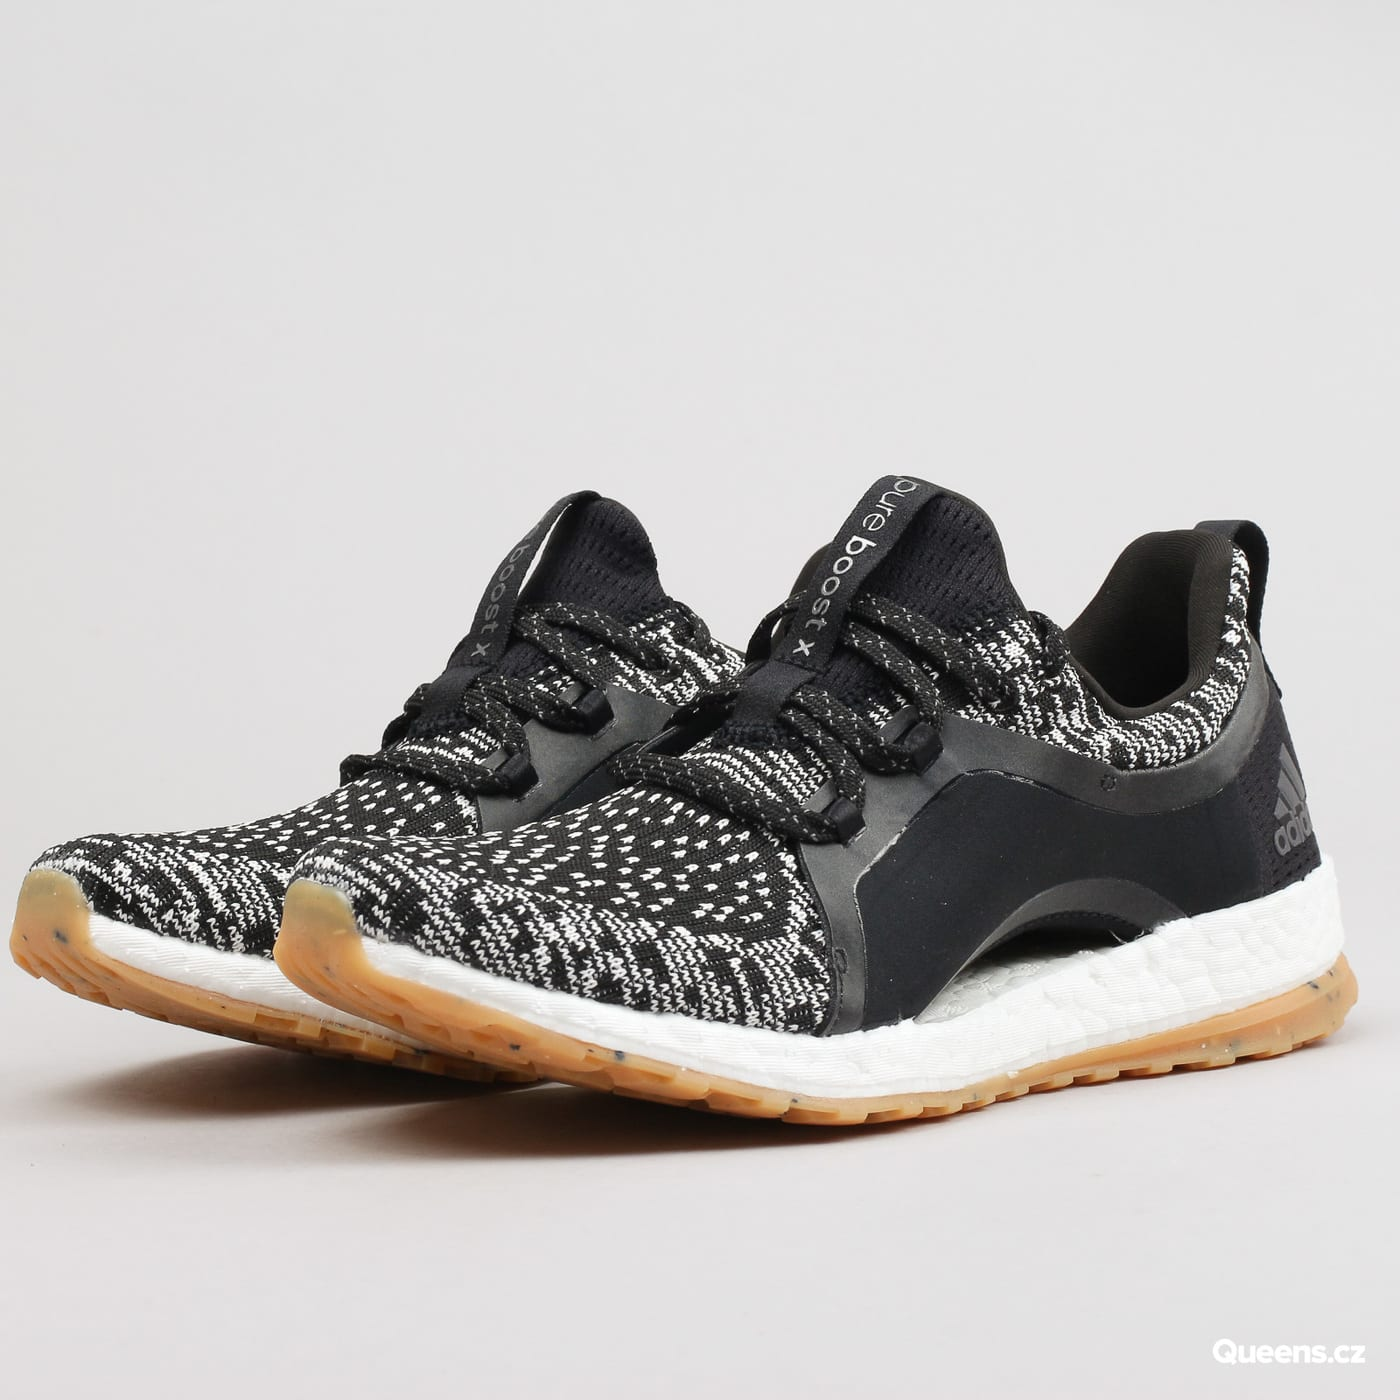 adidas PureBOOST X All Terrain core black / running white / core black